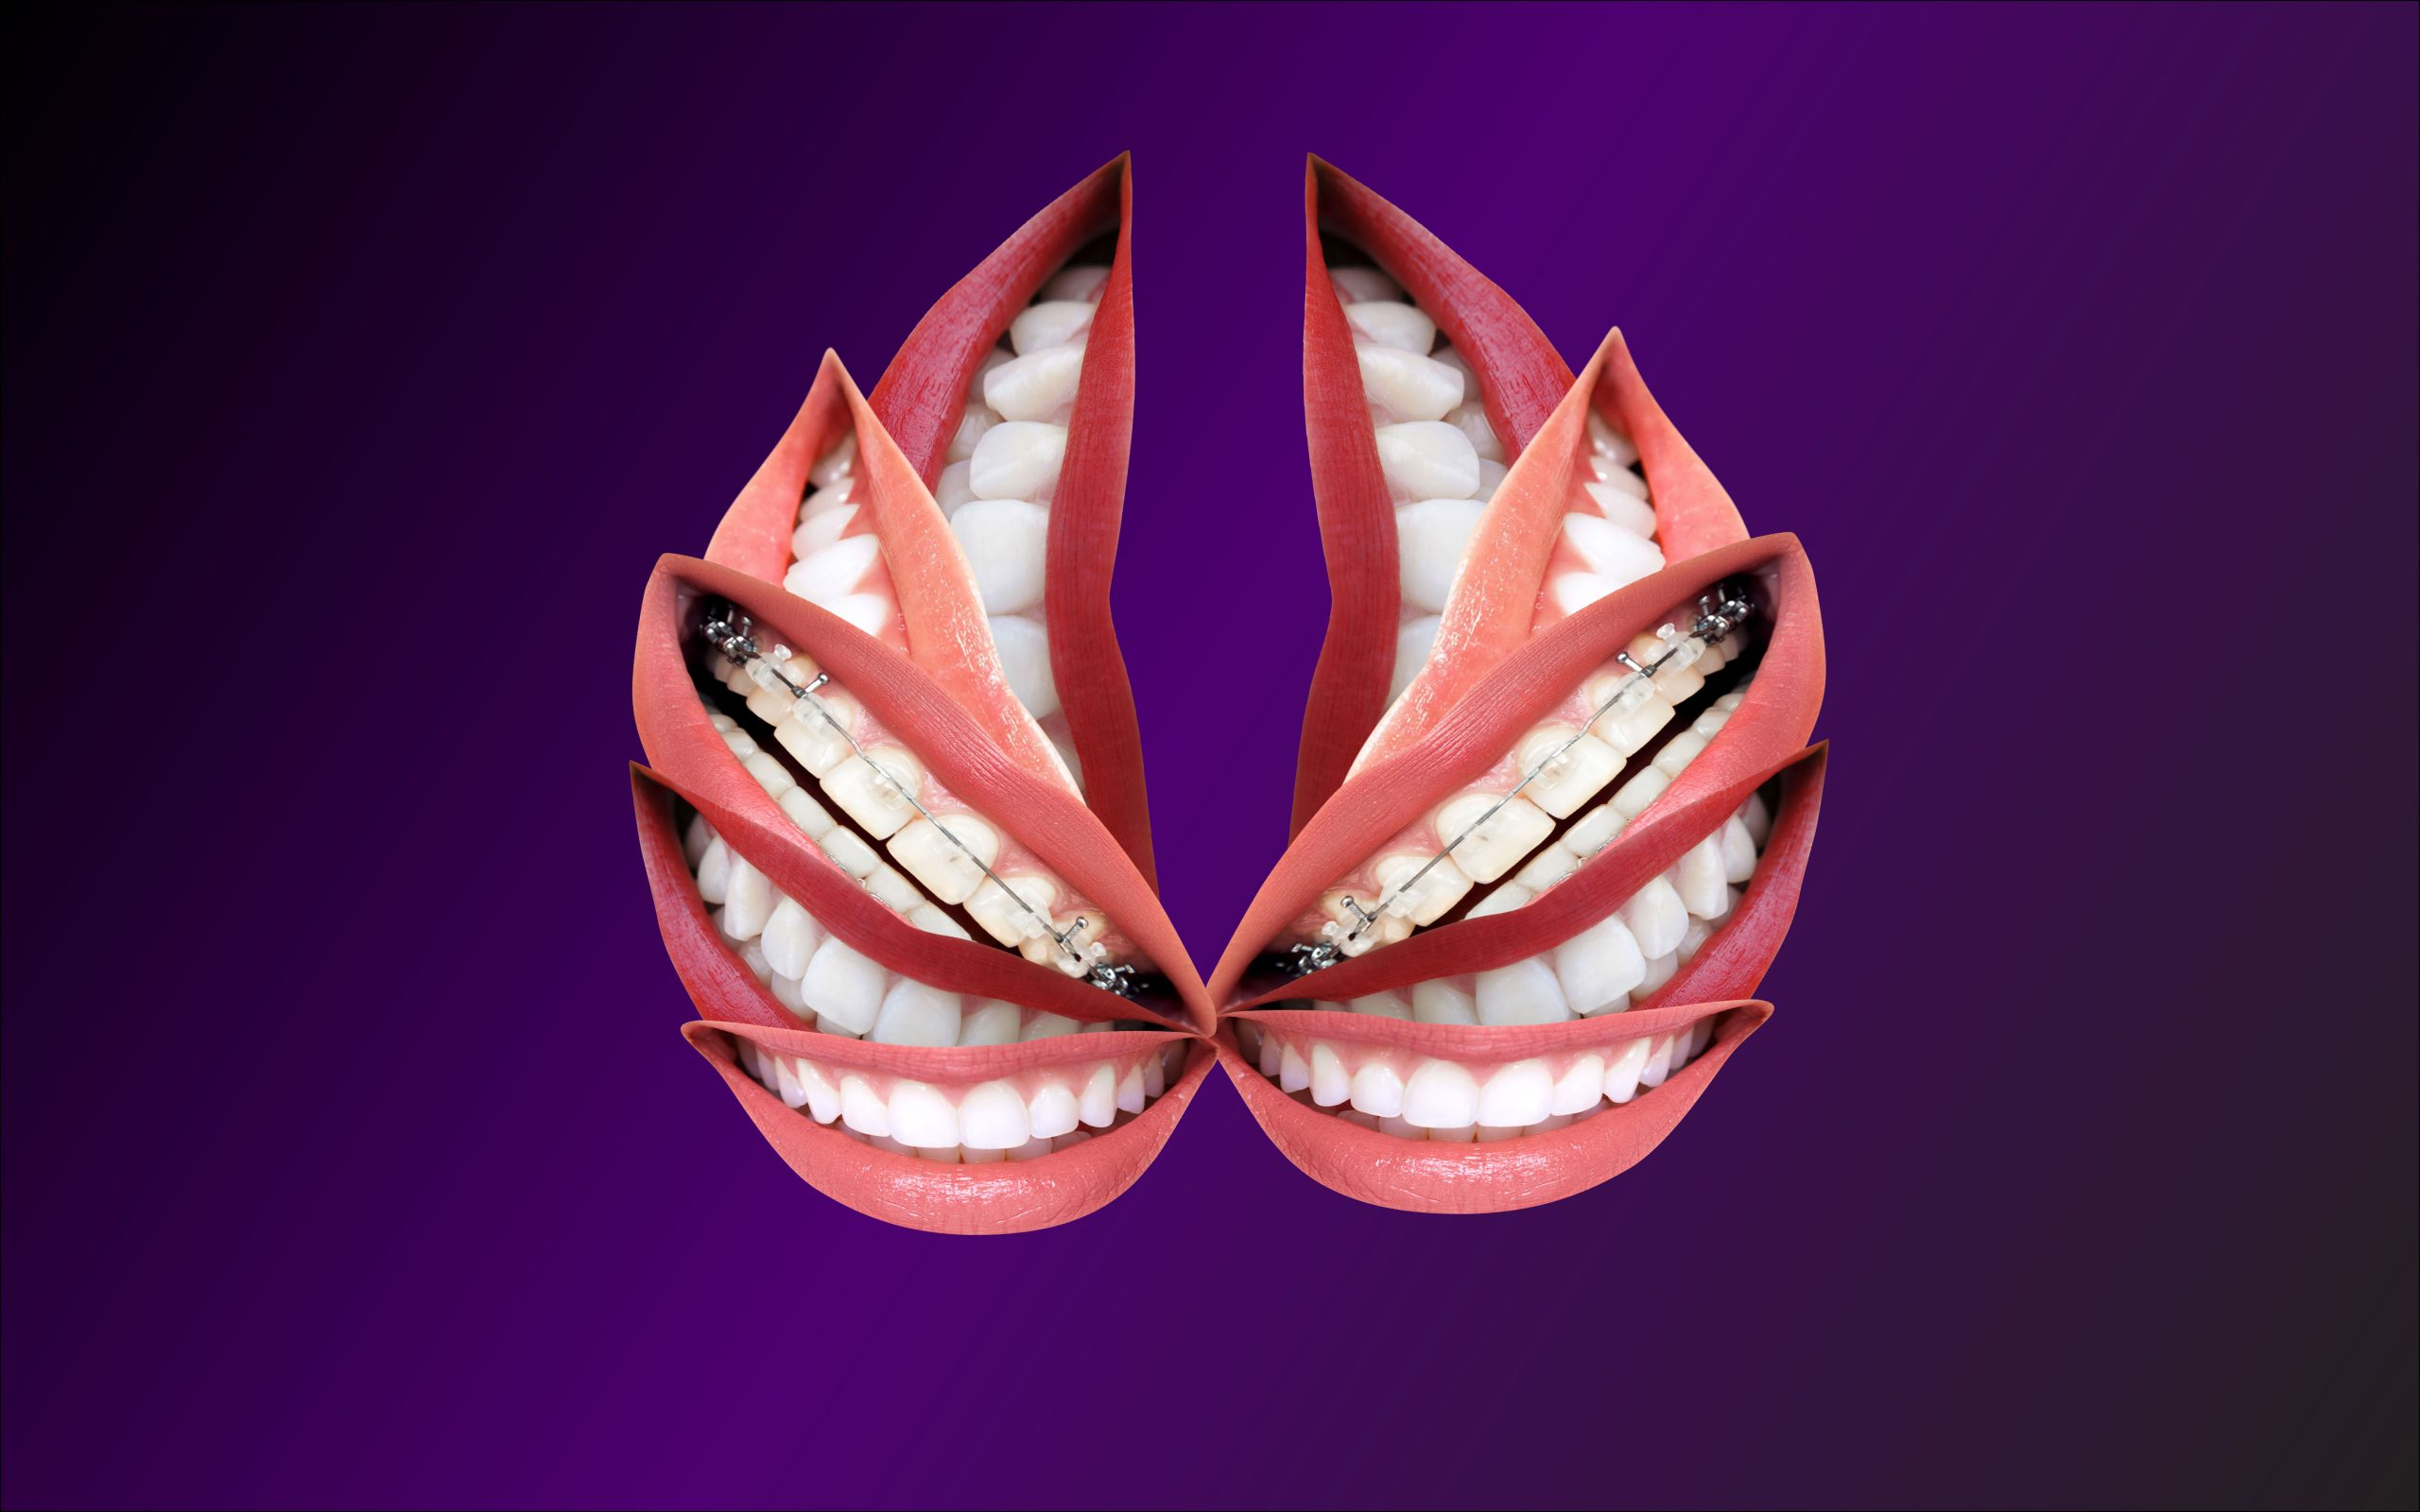 Mirroring of smiling dental teeth